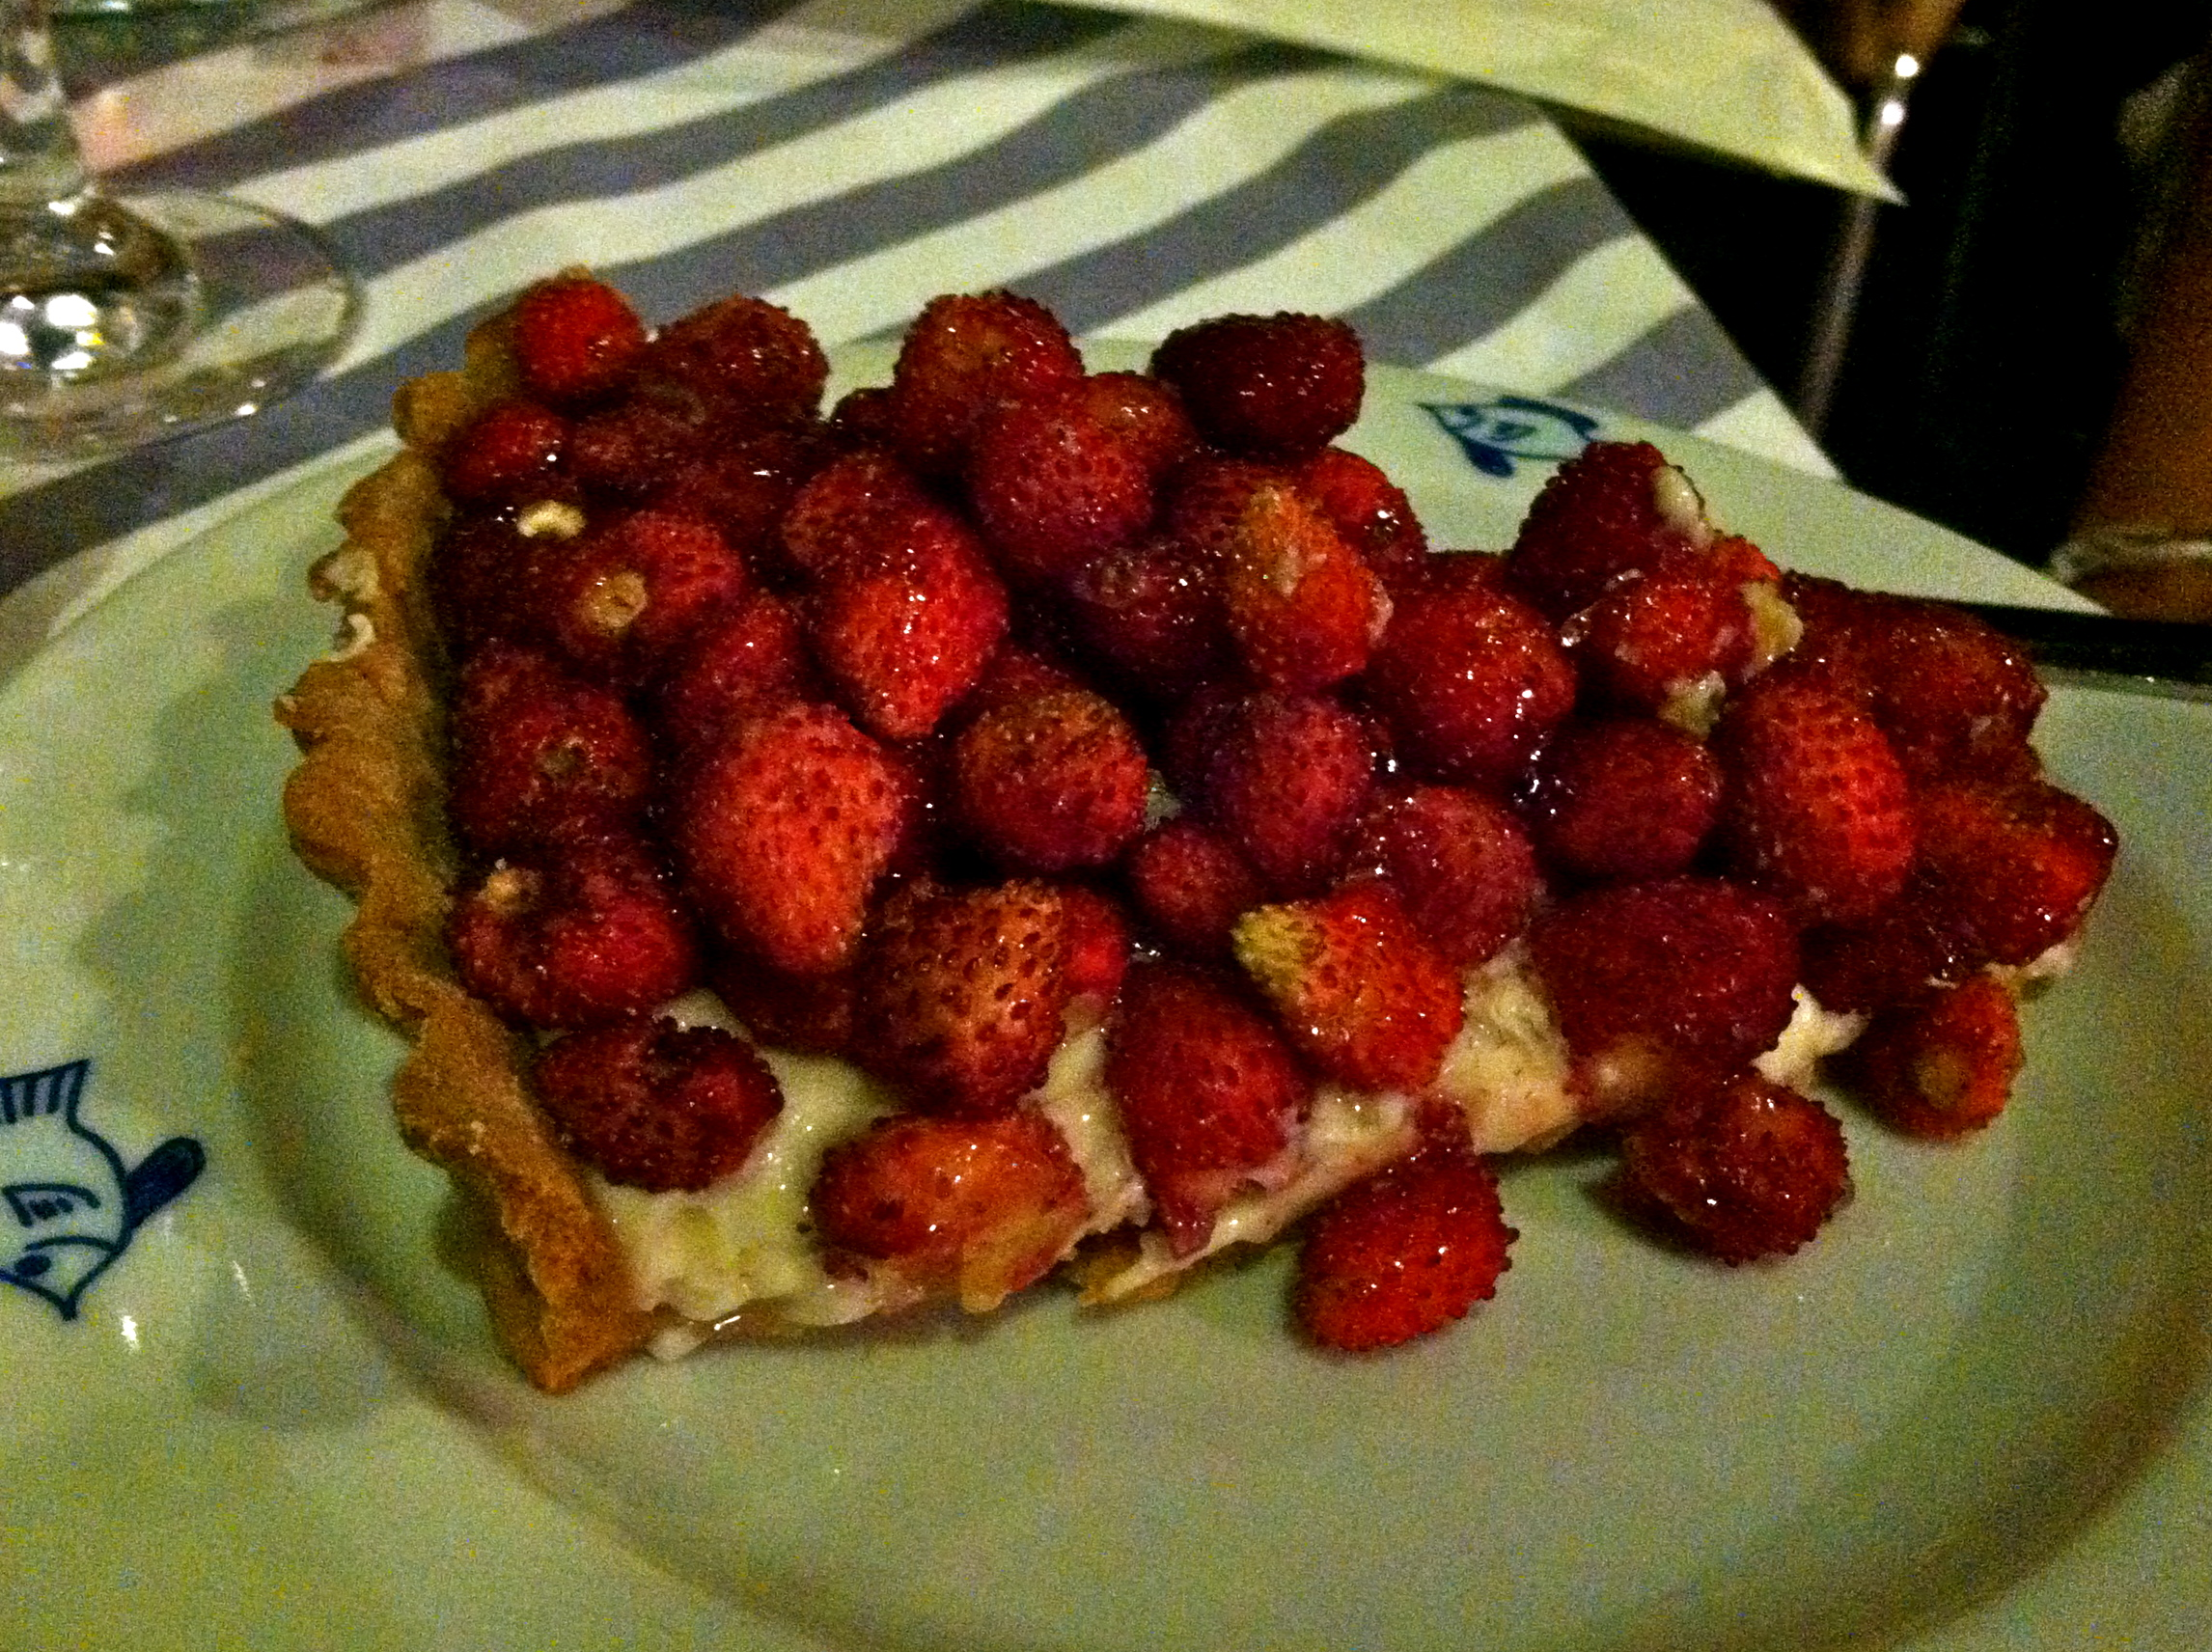 My friend Roxy got this amazing crostata di fragola (strawberry crostata). It was so pretty!